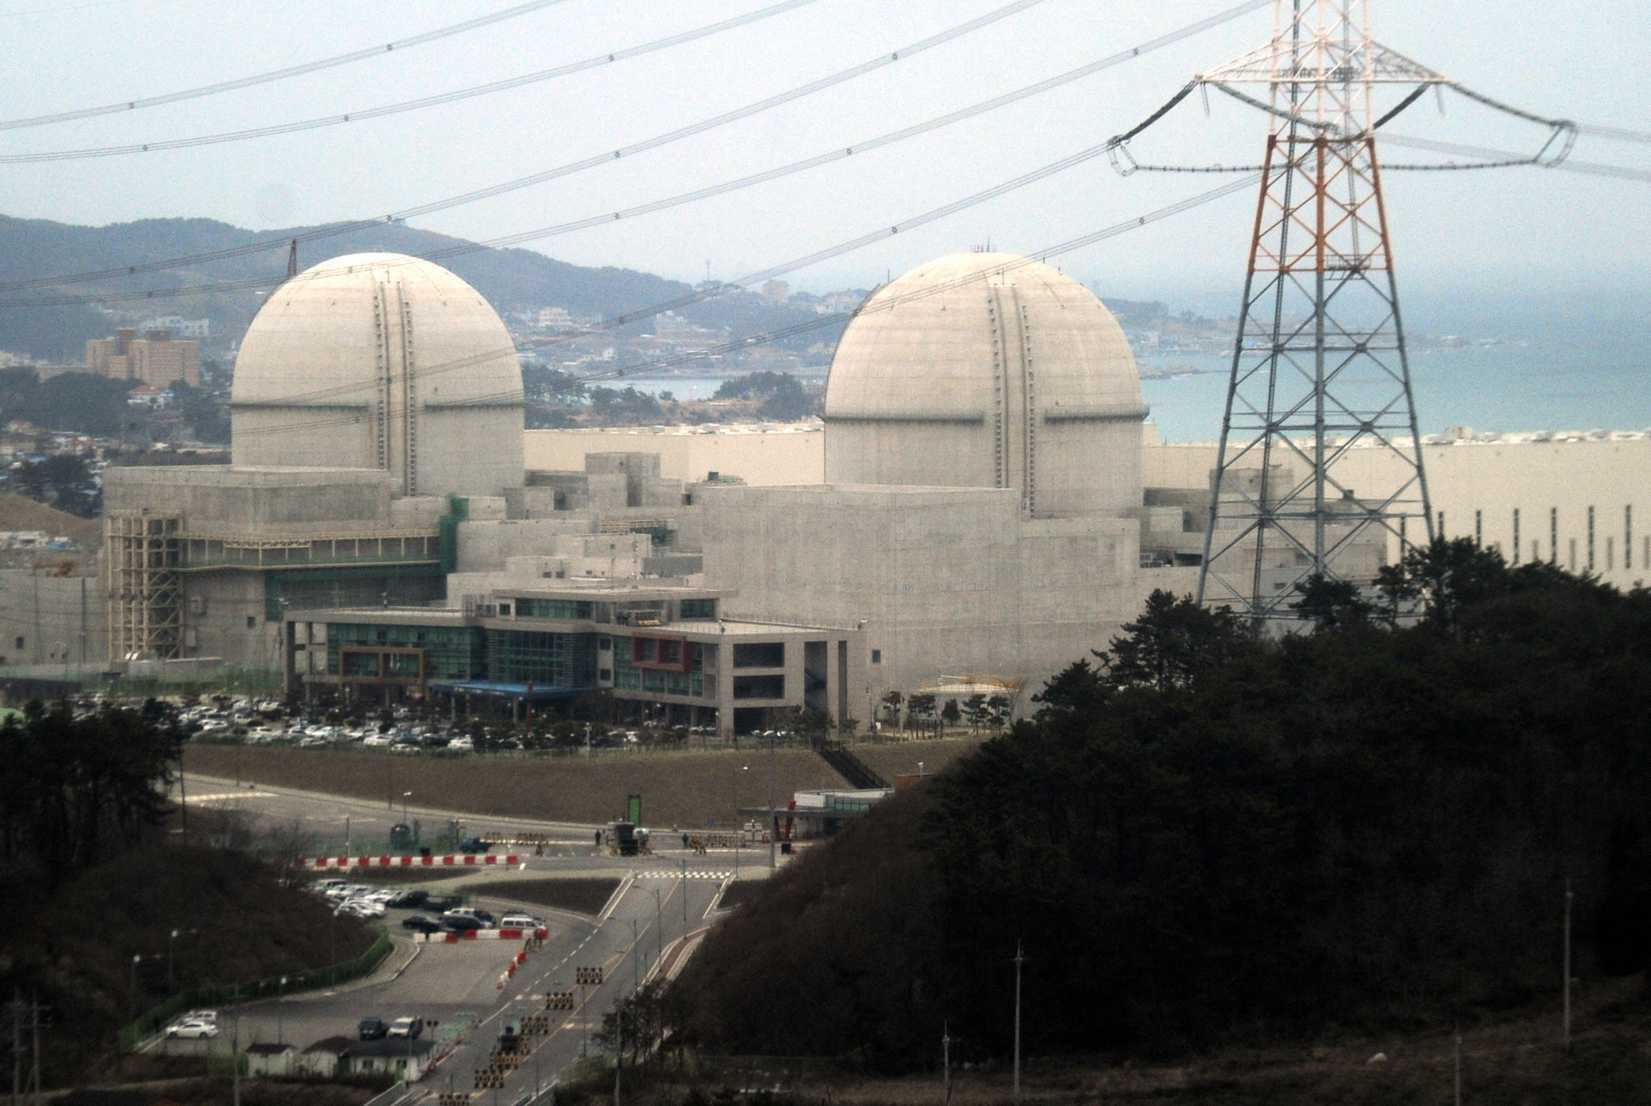 The dome-type Advanced Power Reactor 1400 reactors at the Kori nuclear power plant in Ulsan, South Korea, on Feb. 5, 2013